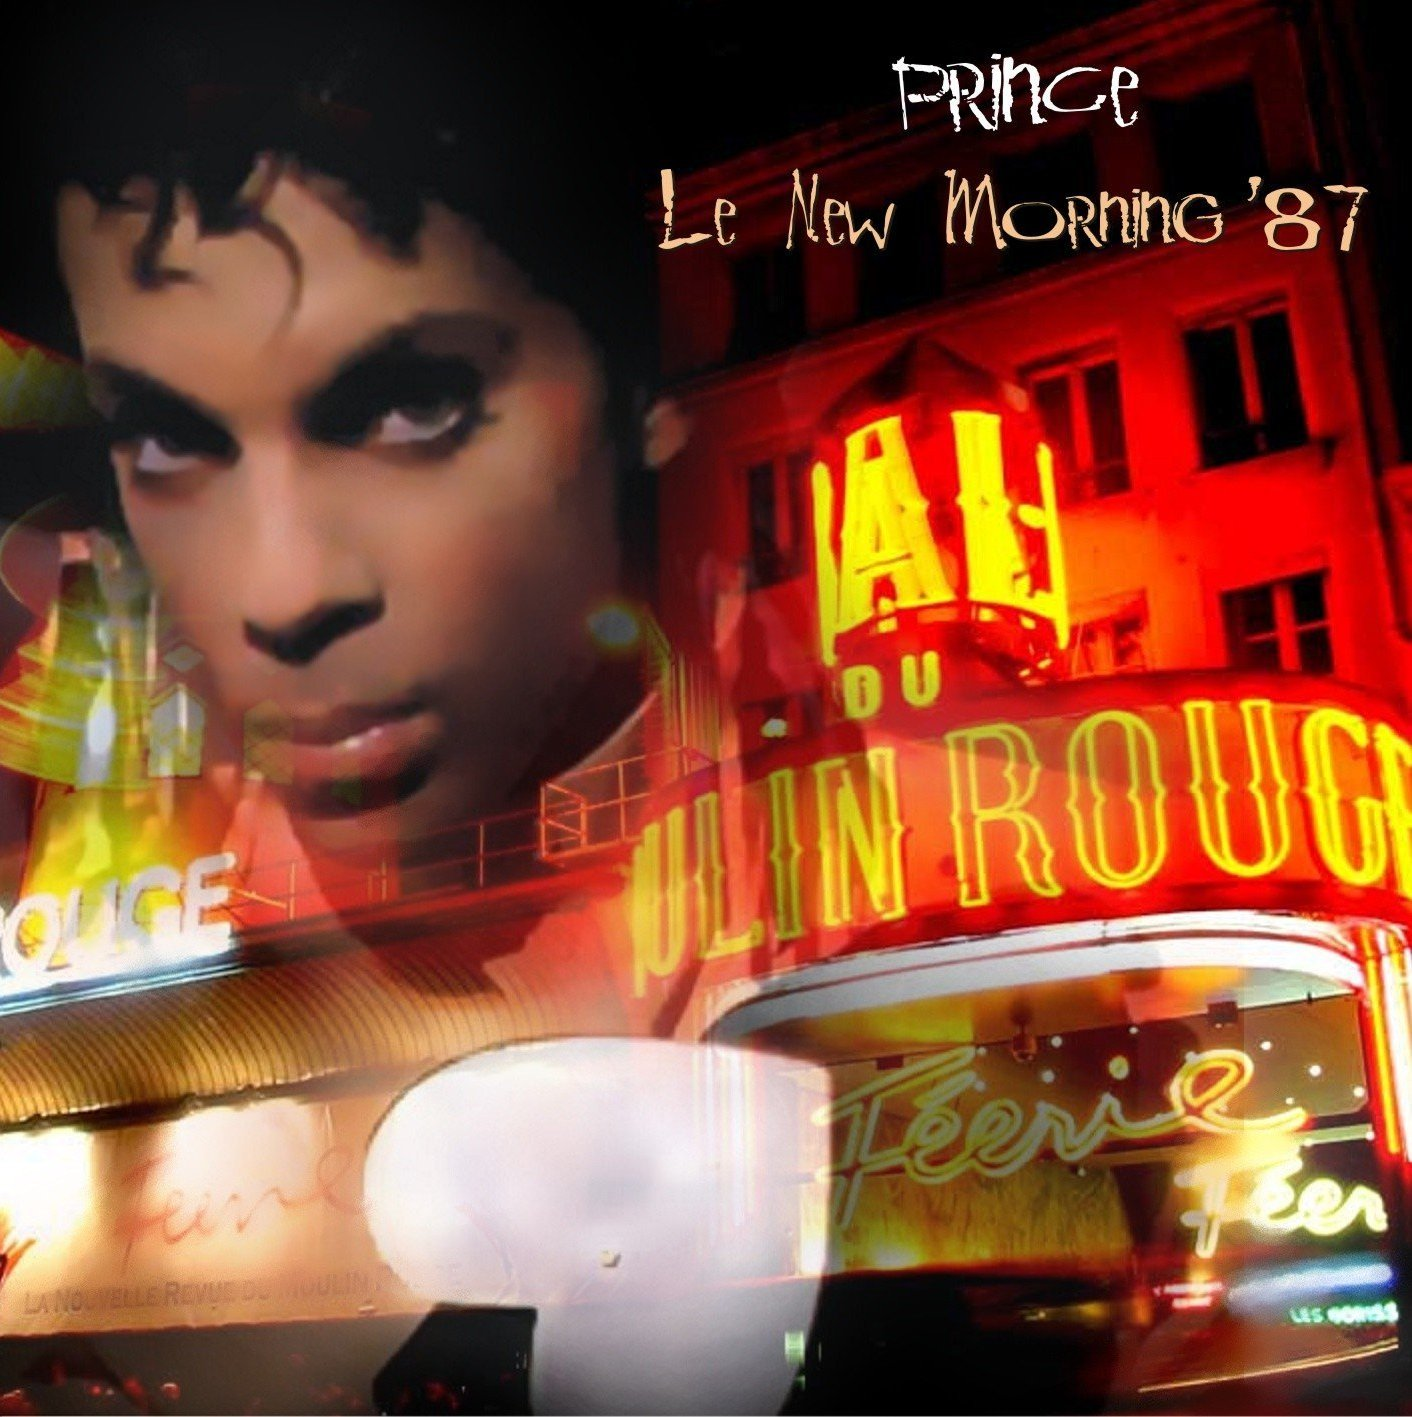 Prince - Le New Morning, Paris, 15 June 1987 -AfterShow- (CD & Covers ...